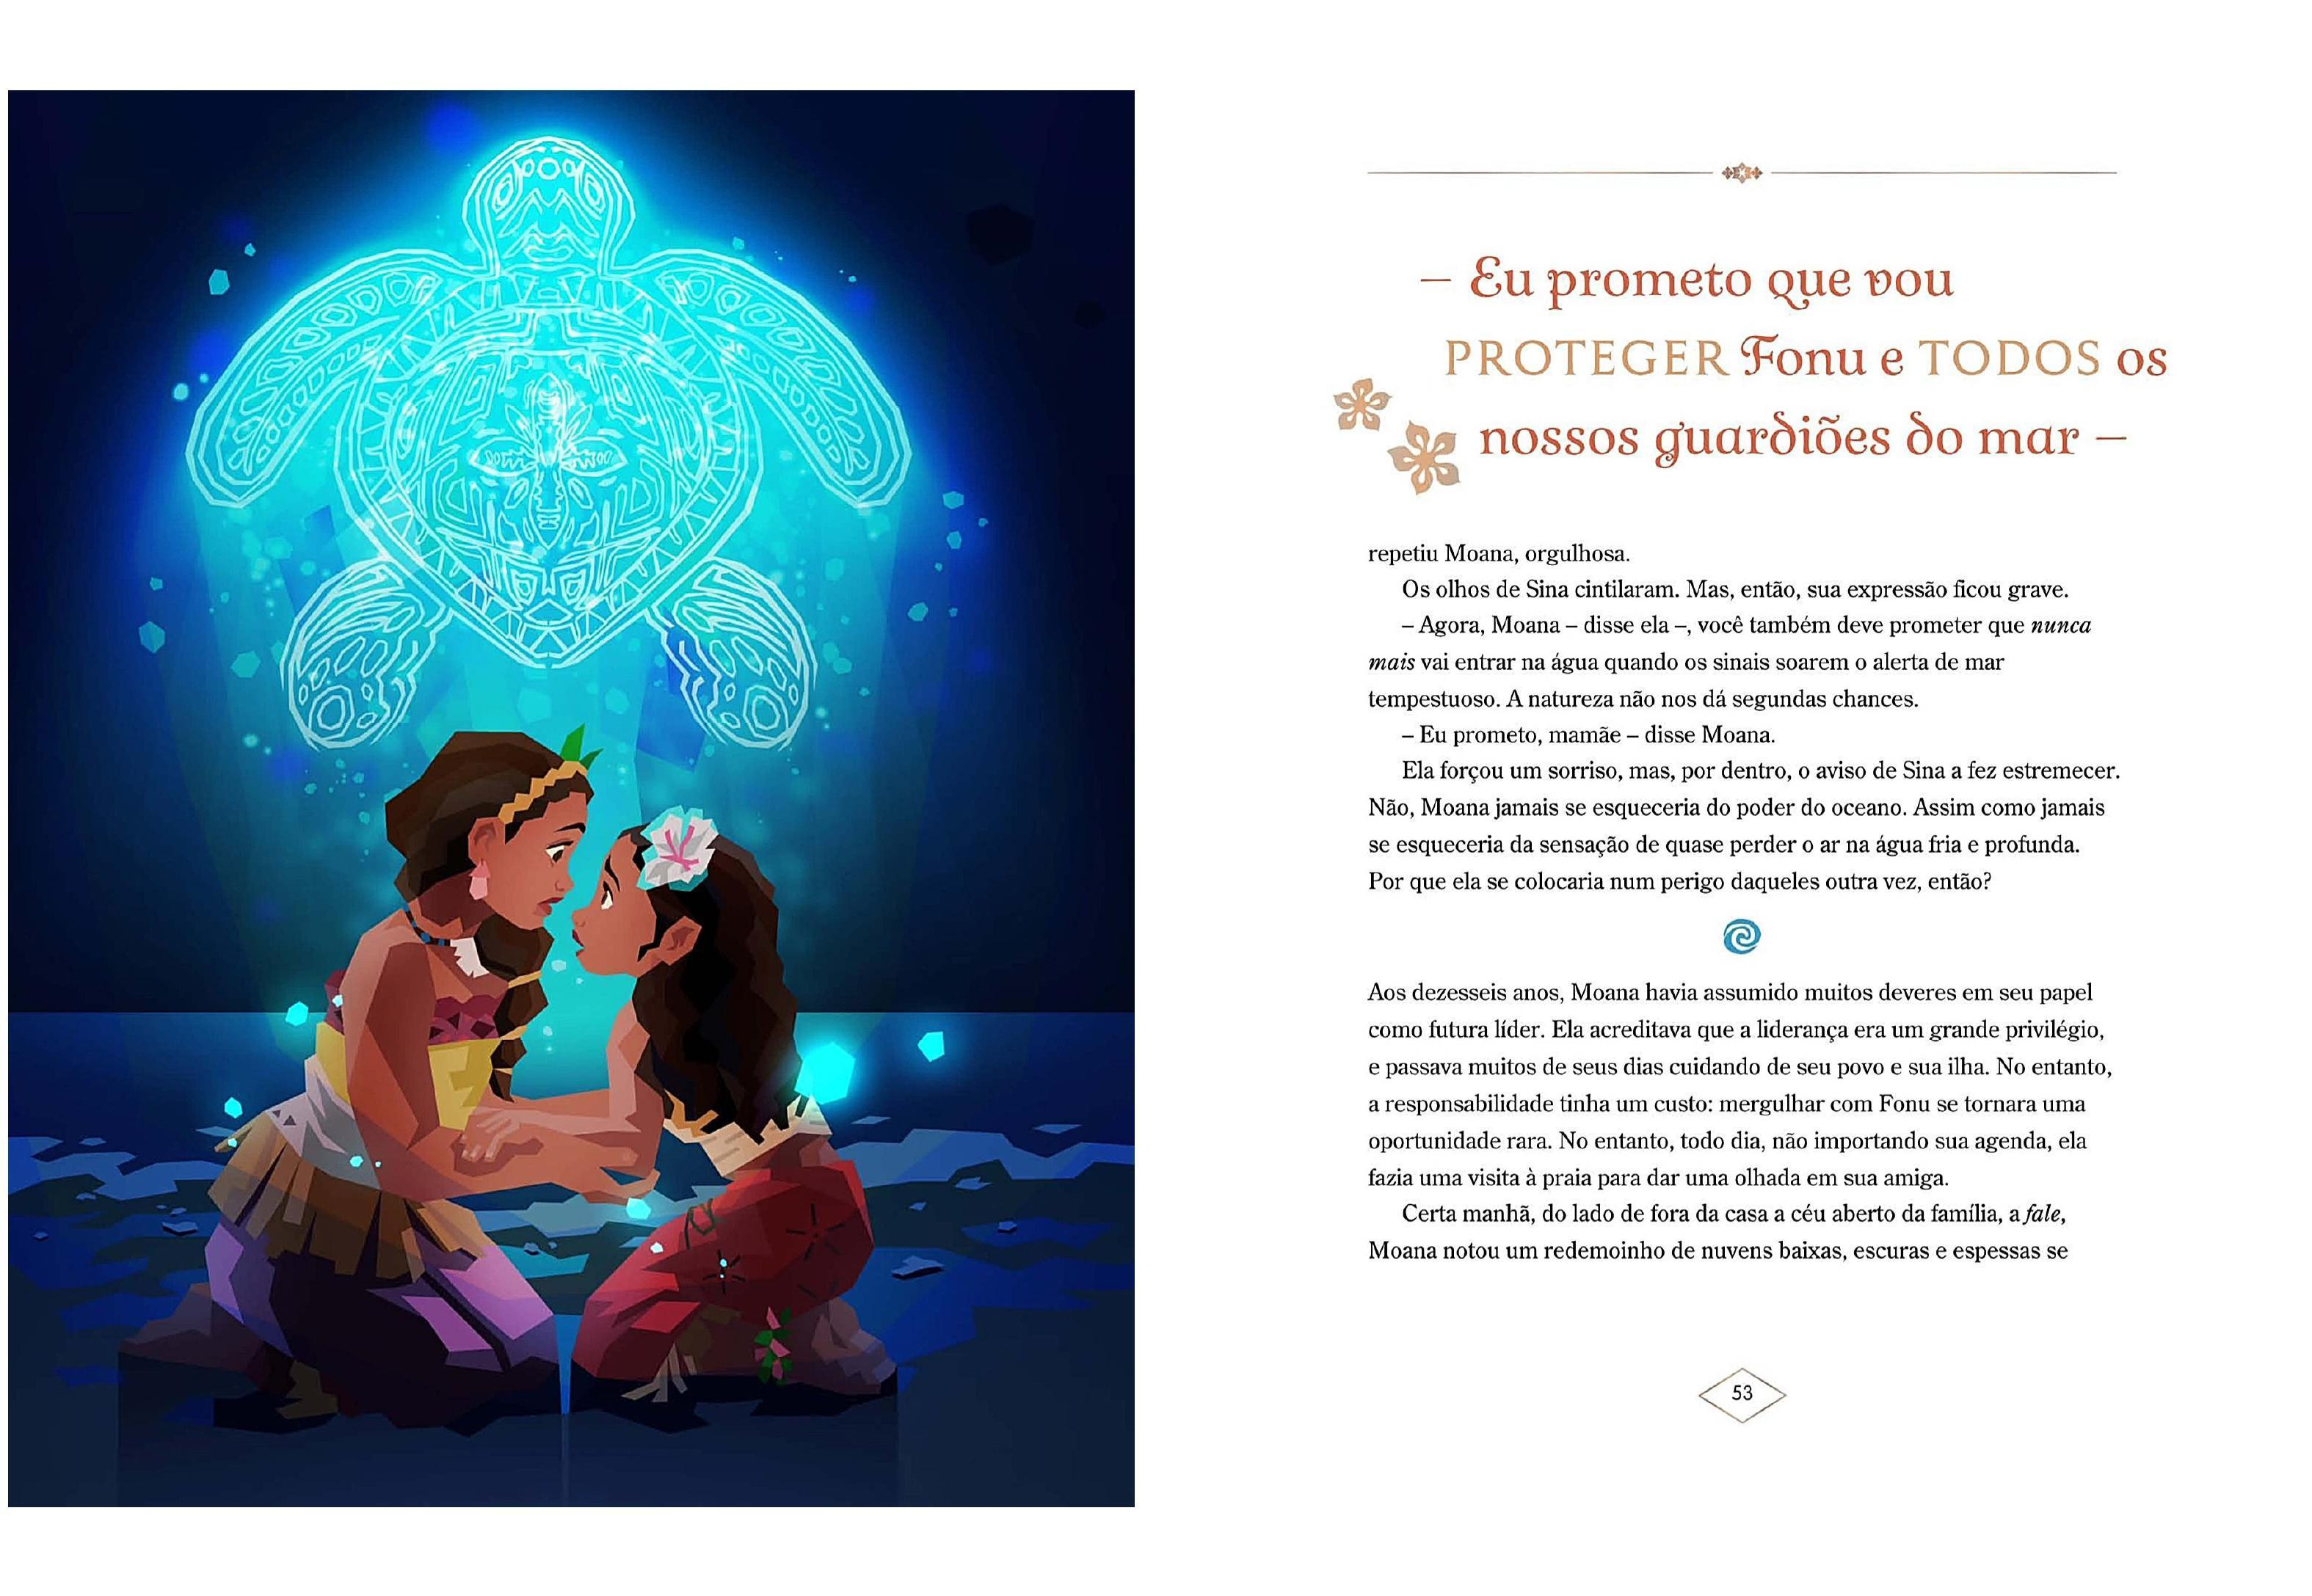 Moana - Ebook 7.1